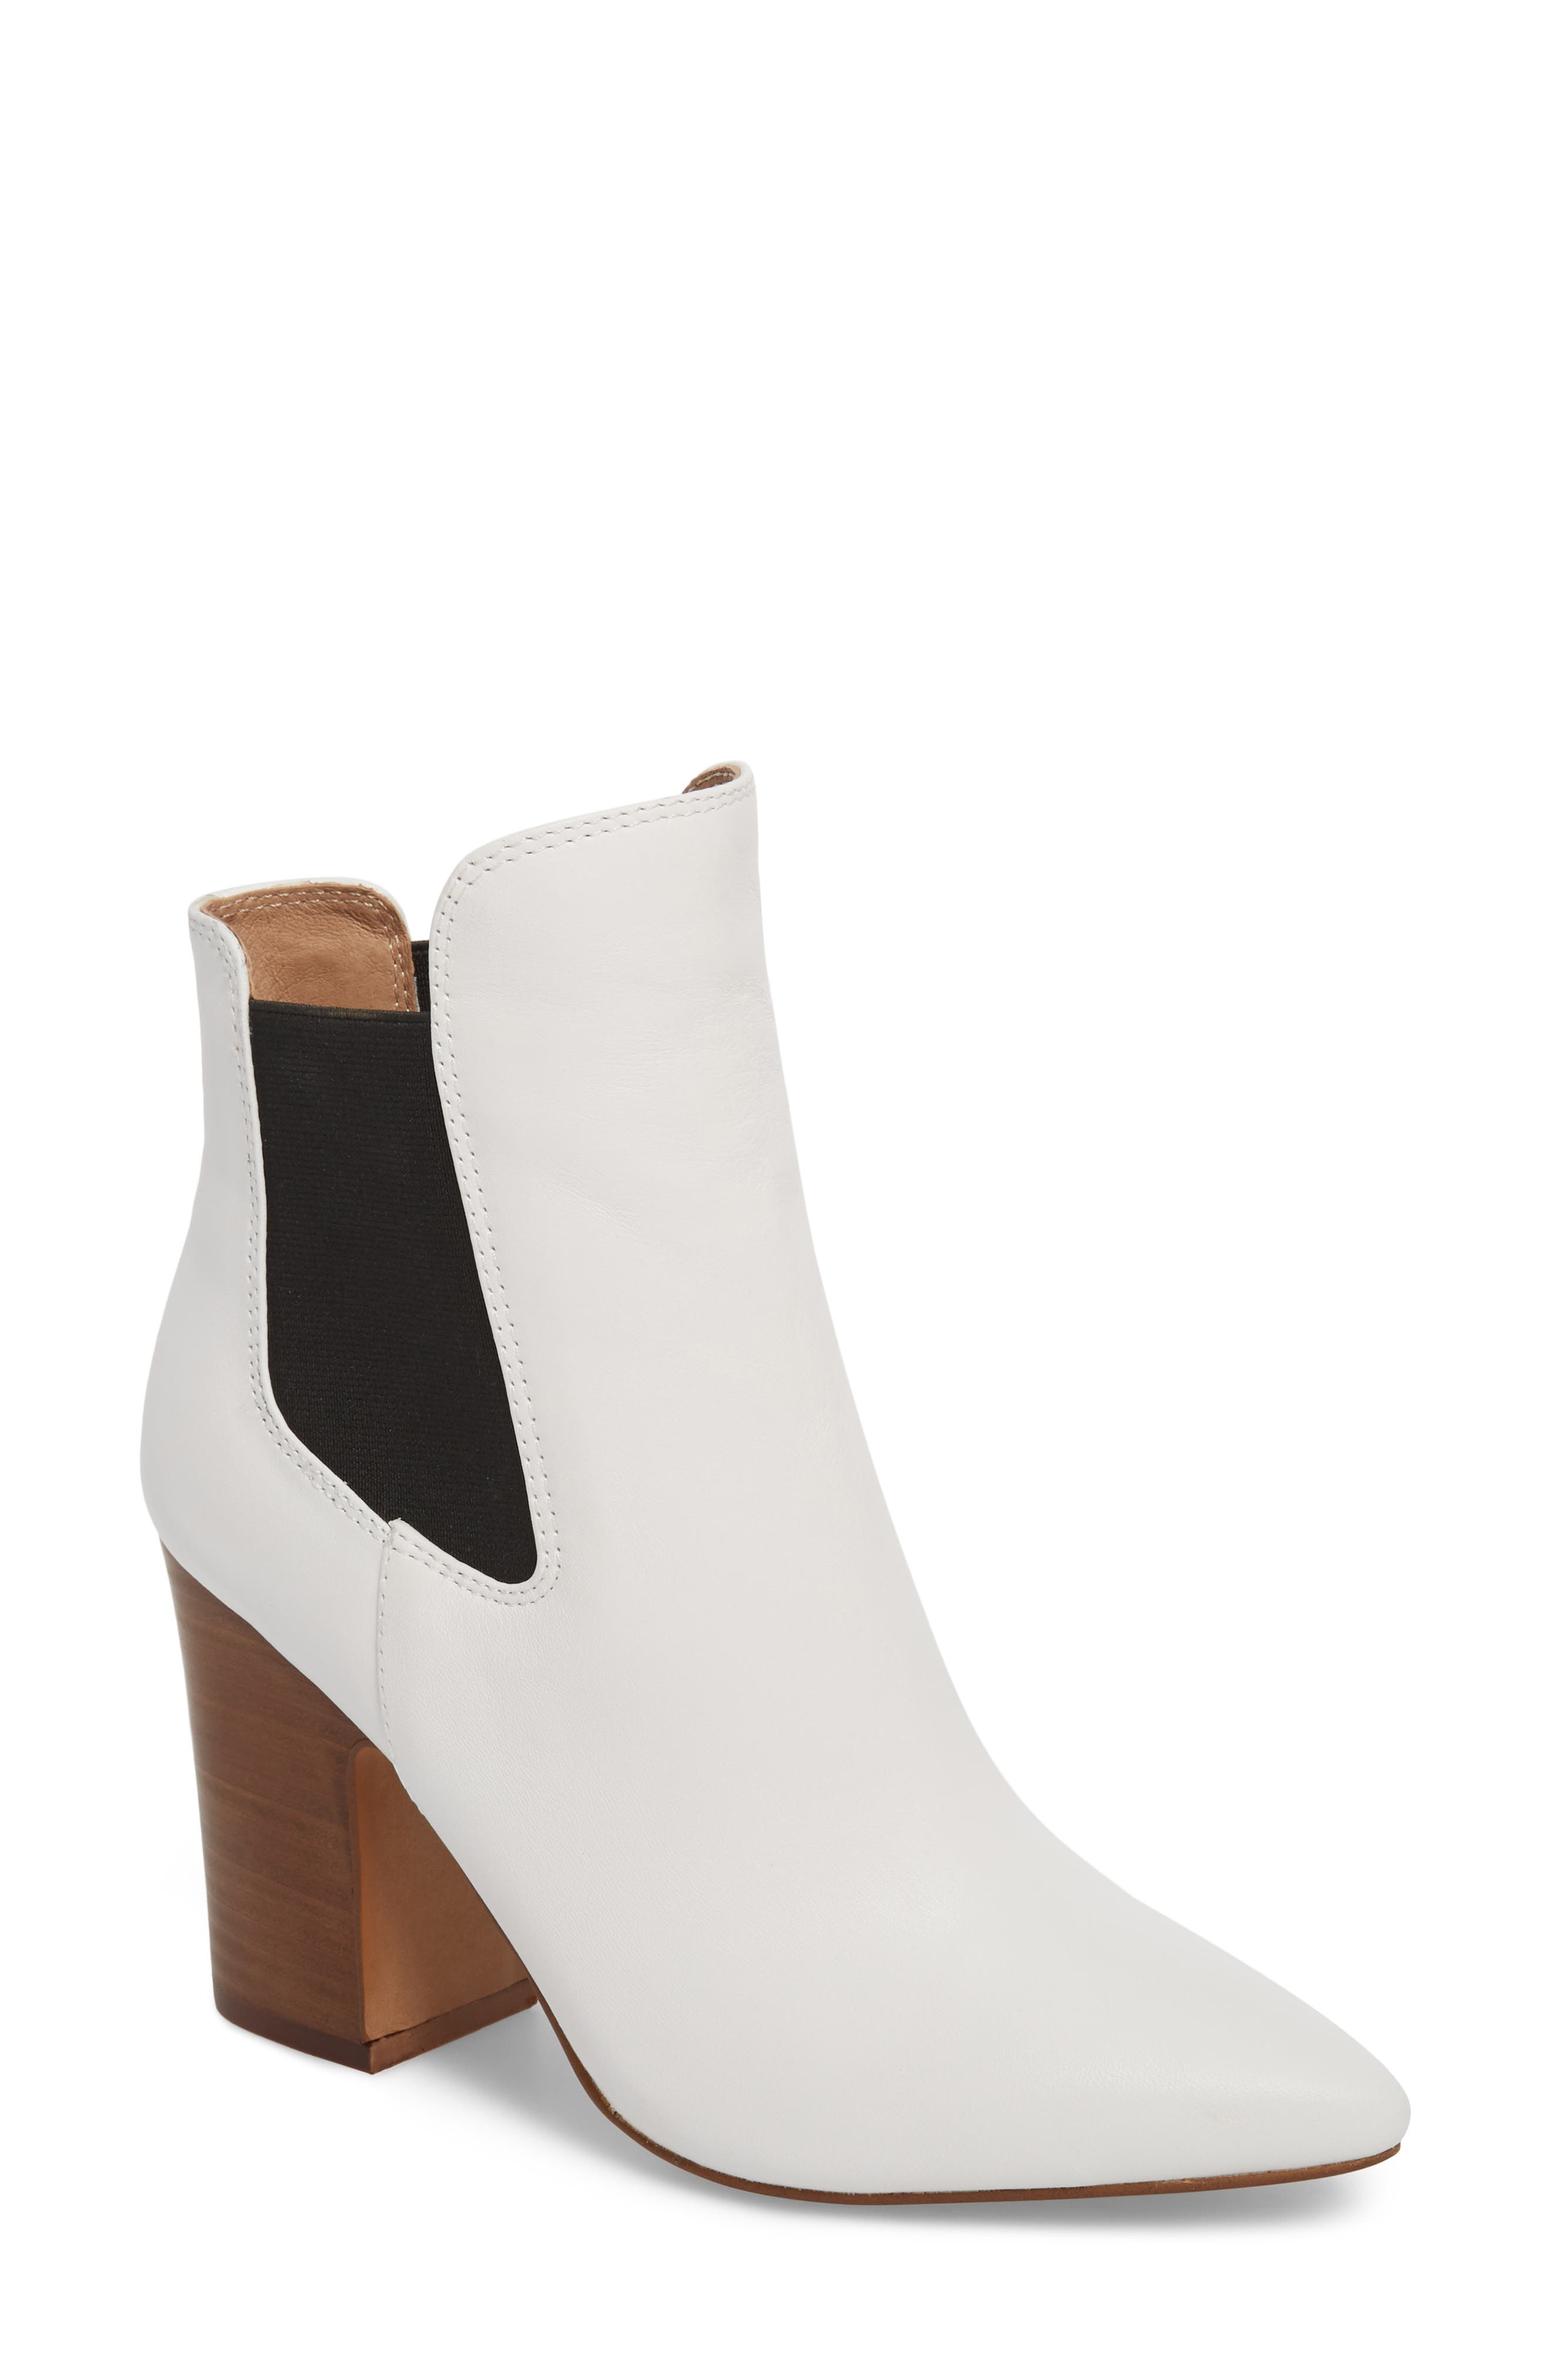 Starlight Bootie,                         Main,                         color, WHITE LEATHER